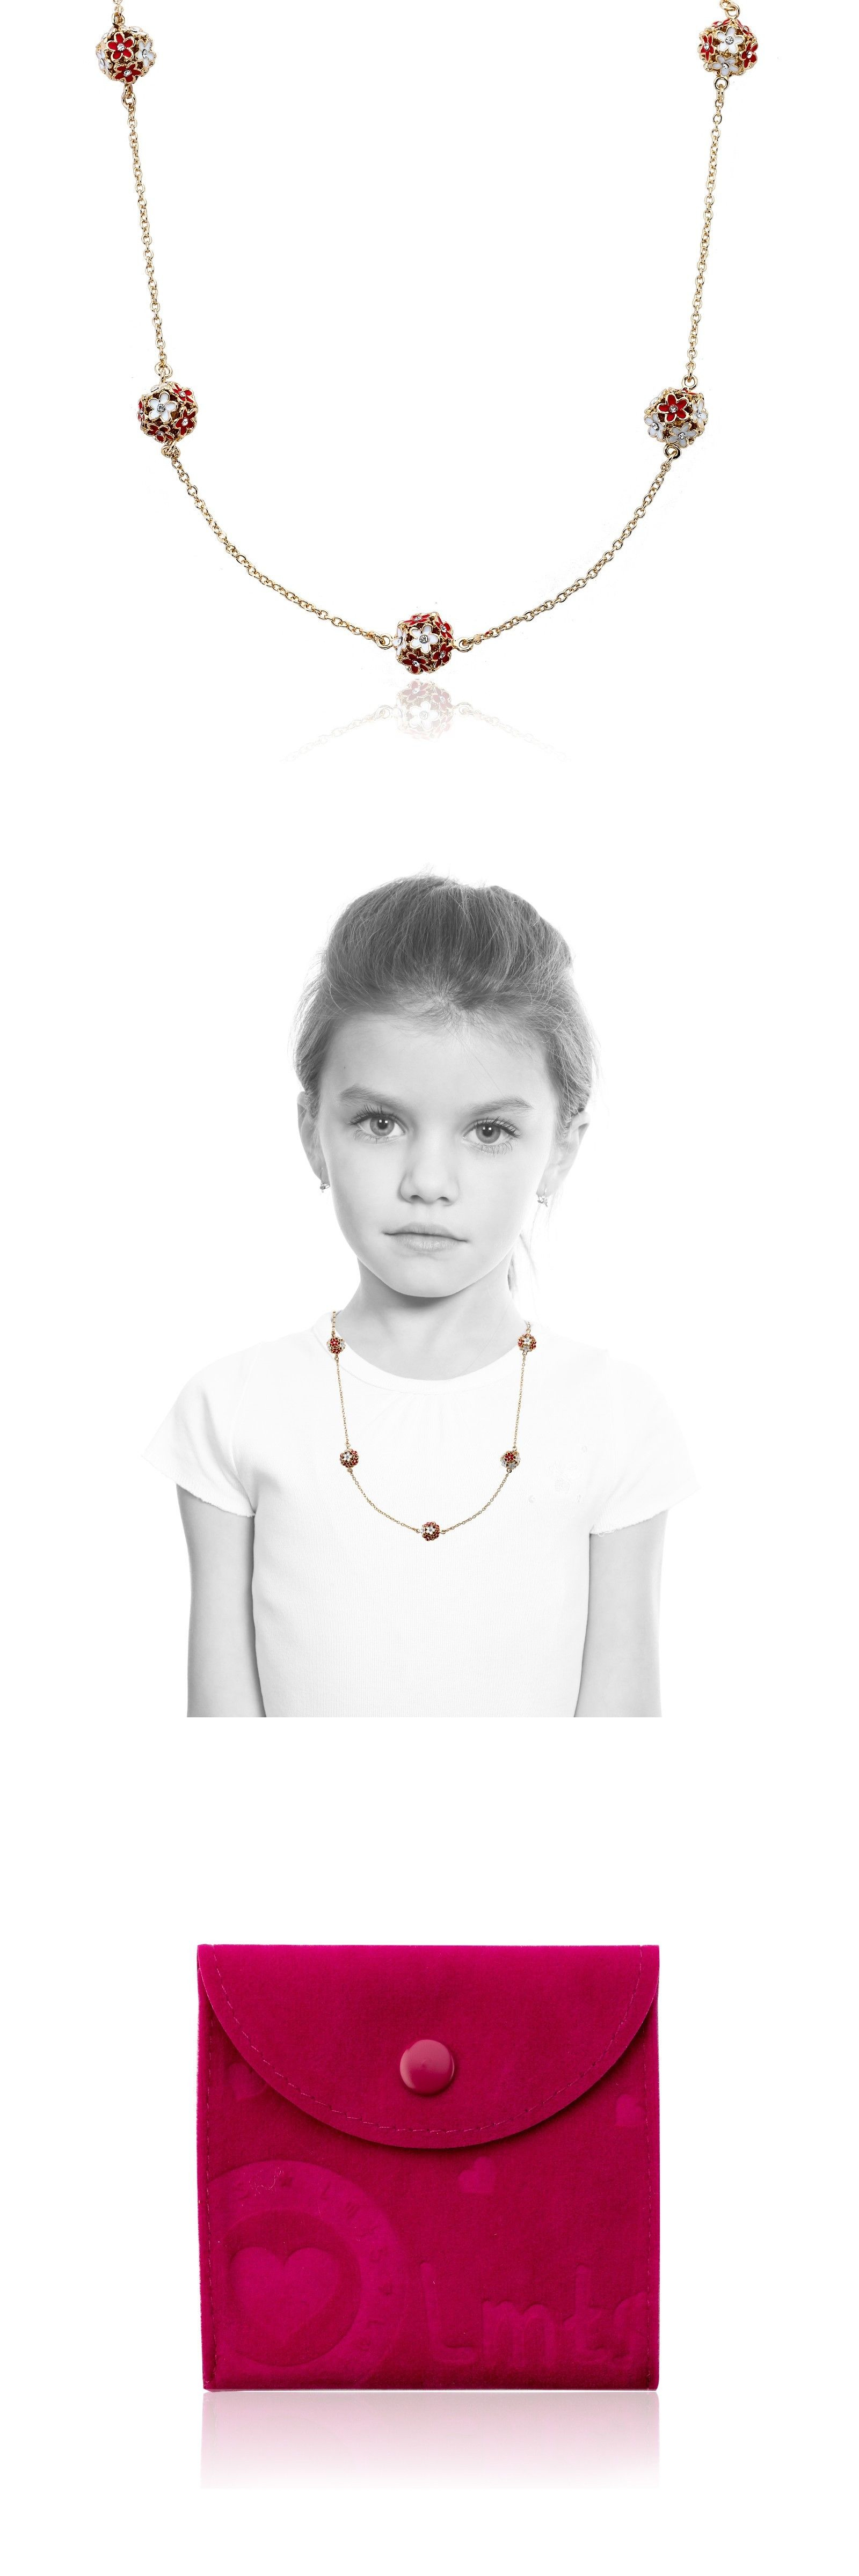 Mixed Lots 164208: Lmts Girls Cz And Red And White Color Enamel Balls On 14K Gold-Plate Chain Necklace -> BUY IT NOW ONLY: $44.5 on eBay!